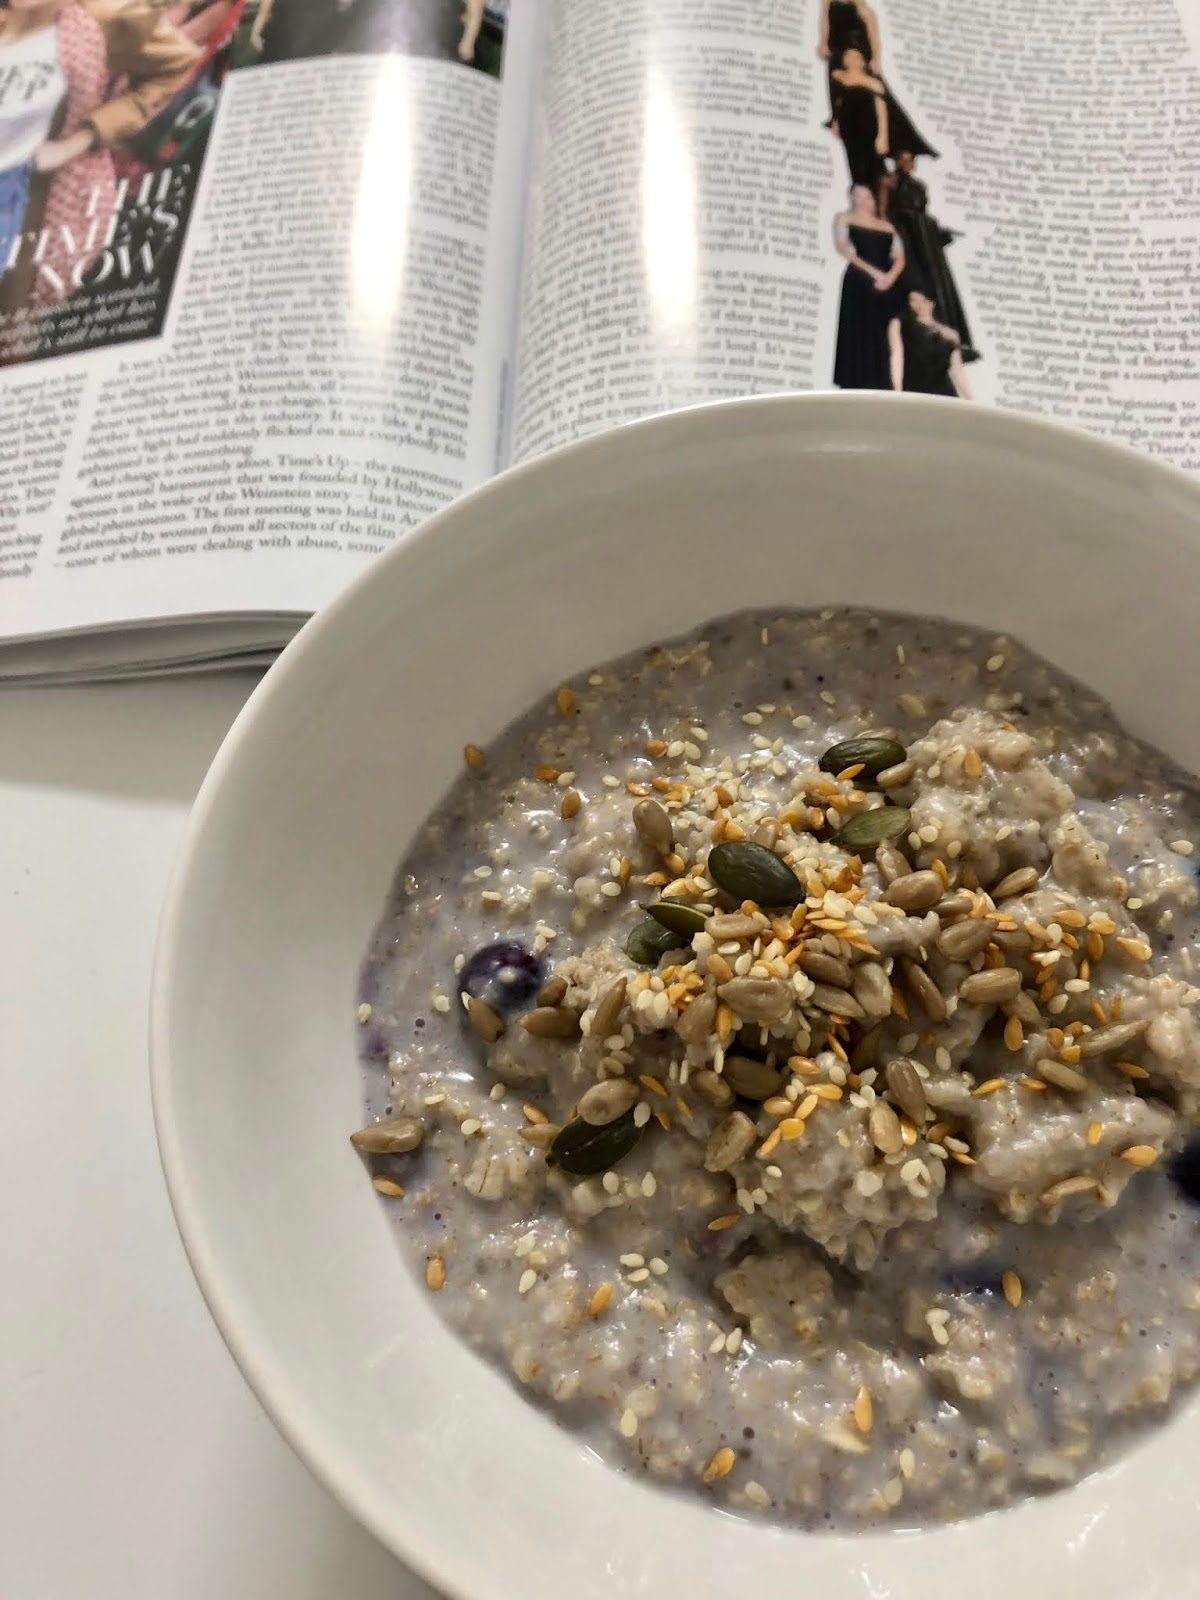 Breakfast, Porridge, Oats, Recipe, Healthy Idea, Blueberries